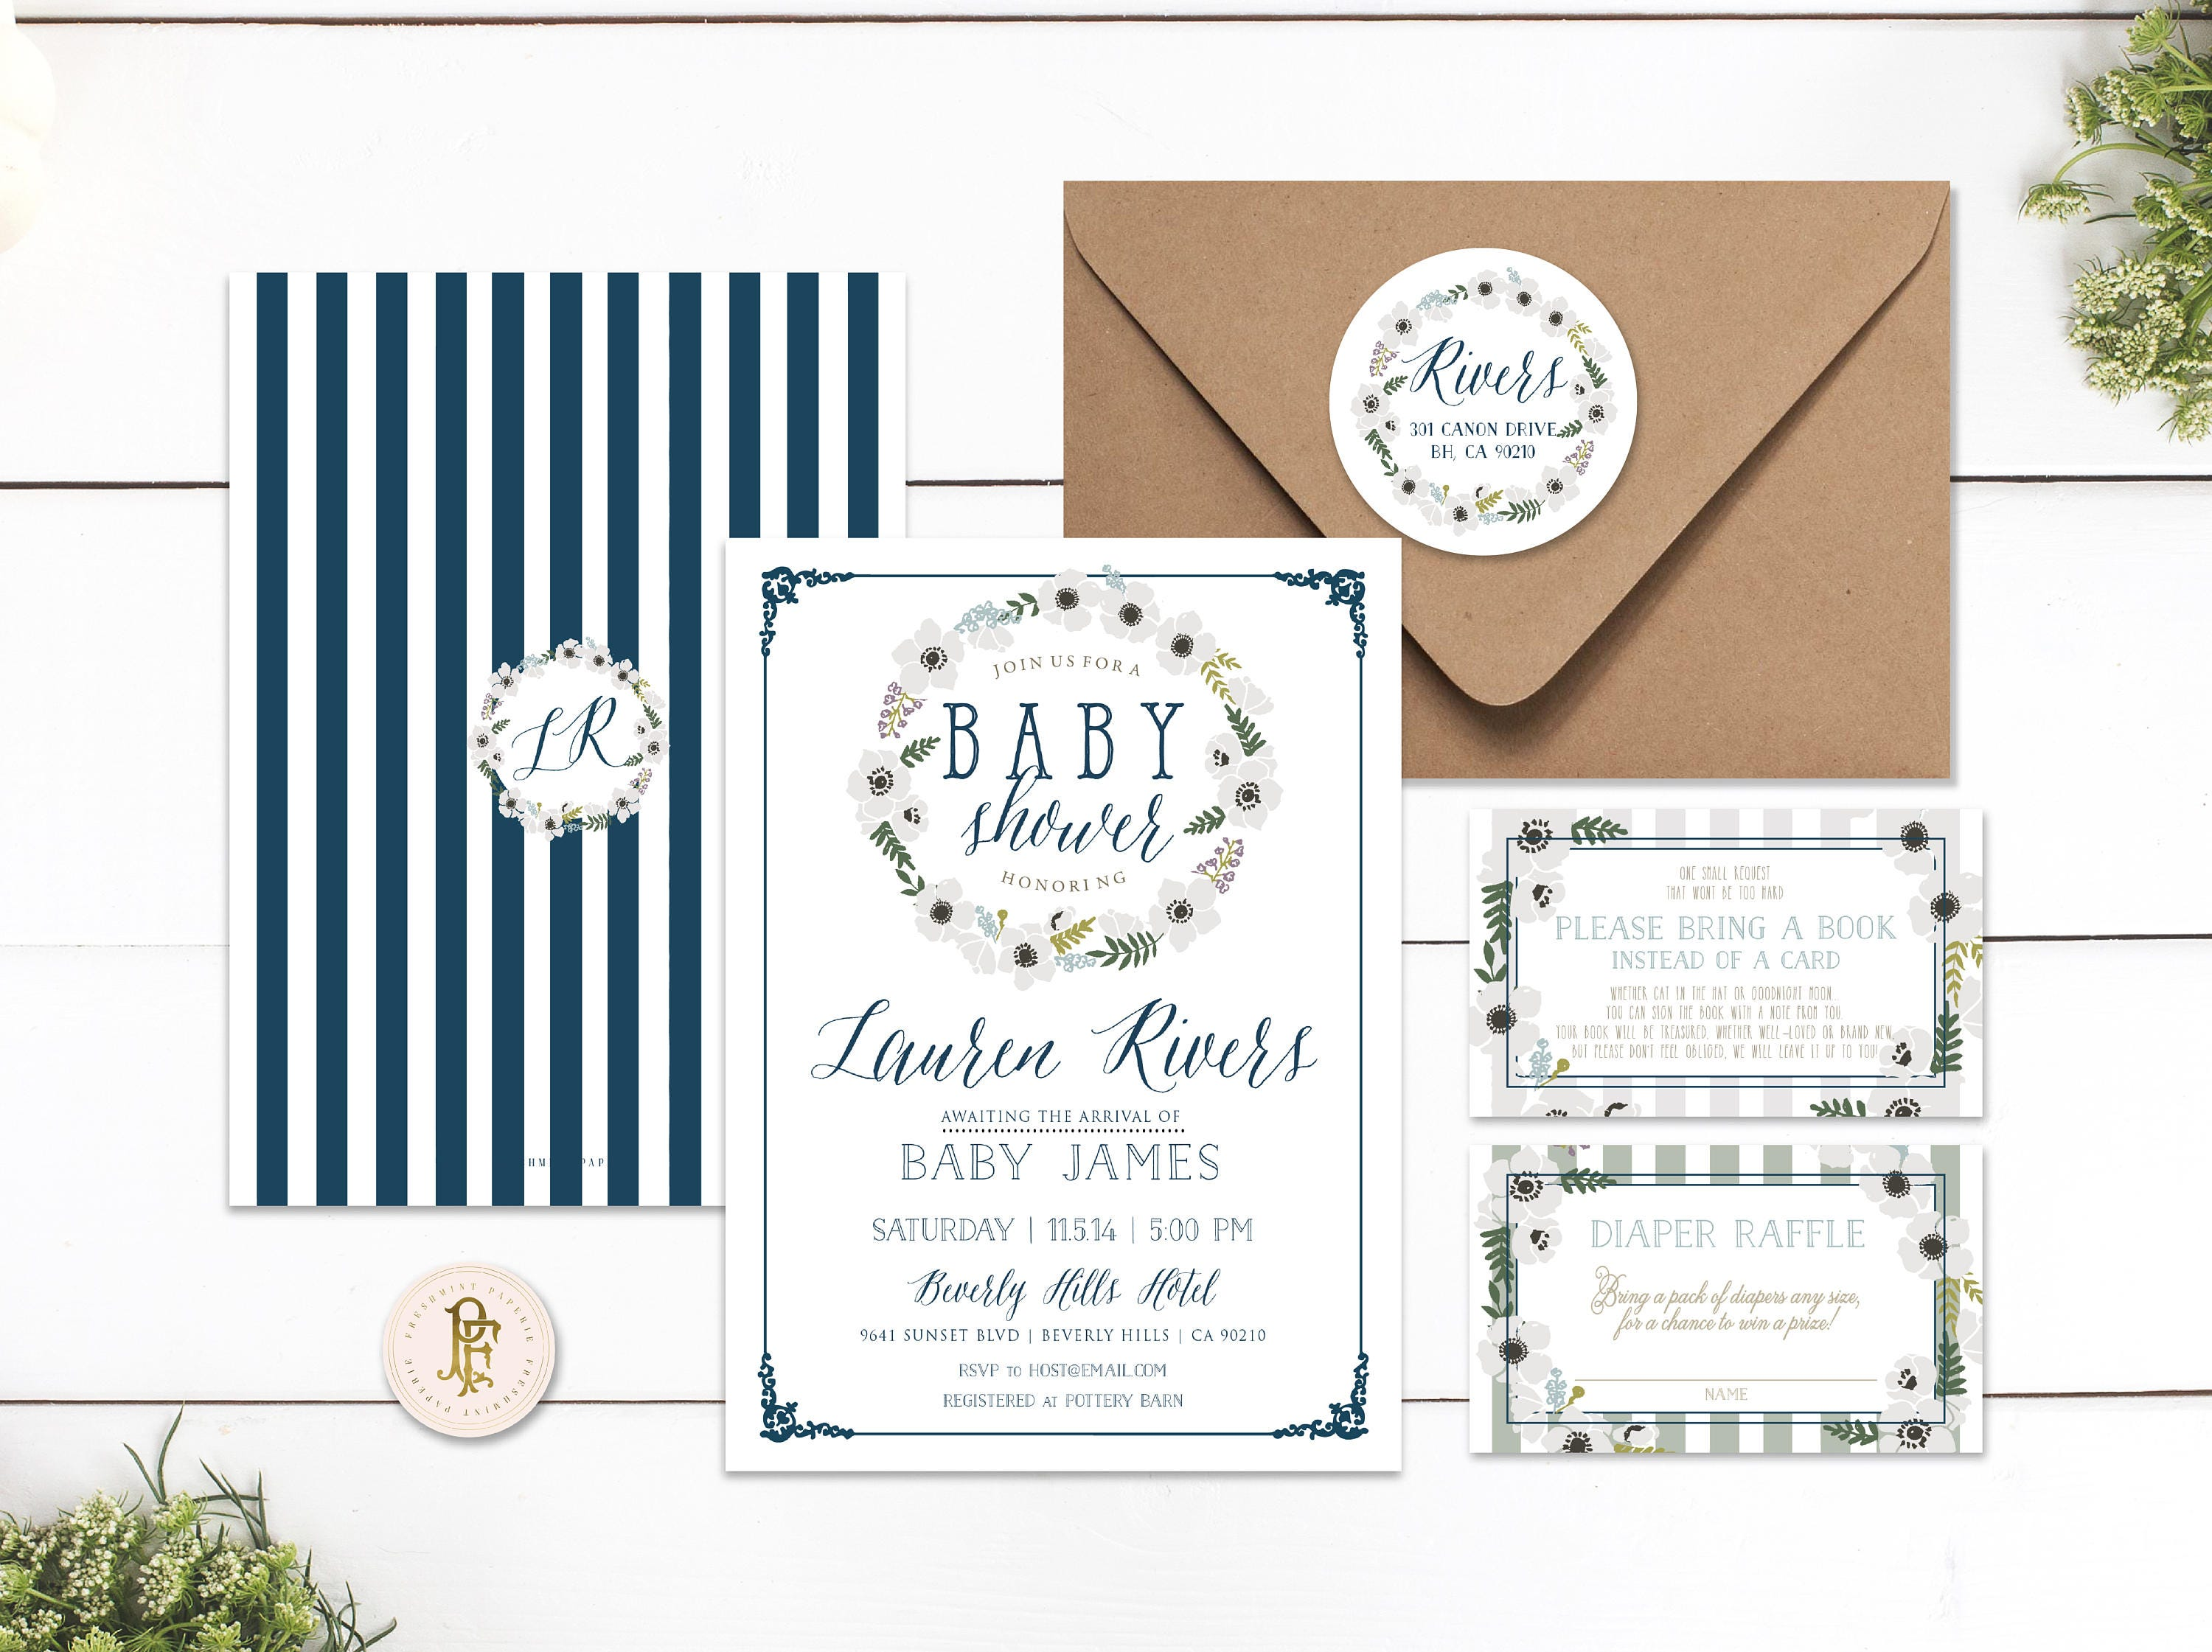 Printable invitations - baby shower invitation - navy blue floral ...